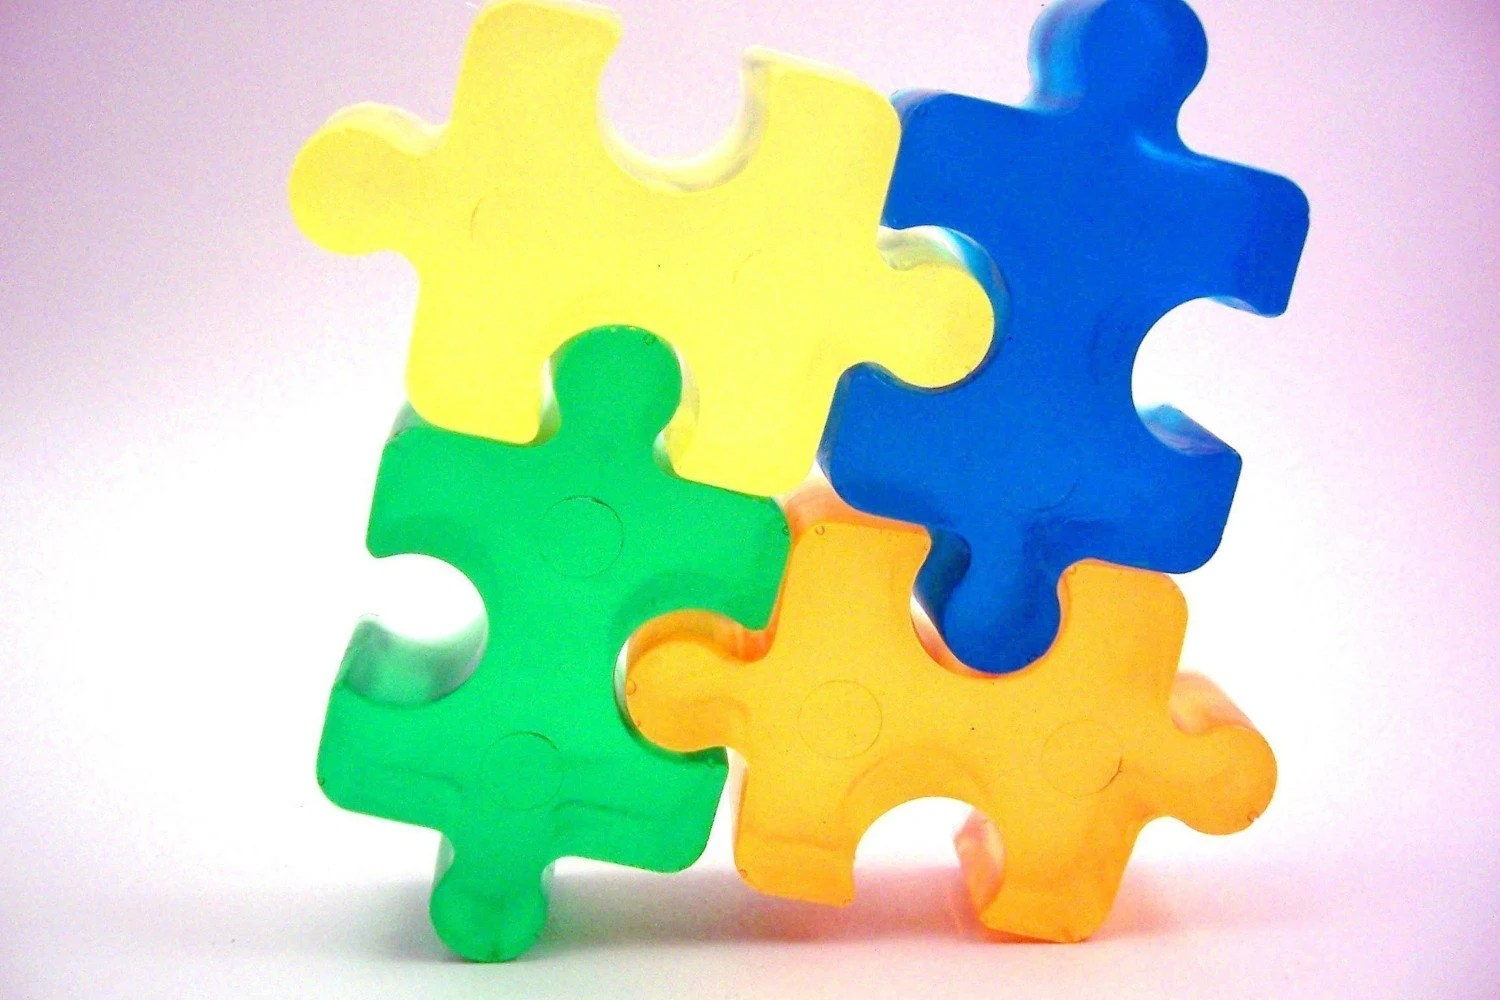 $2 from the sale of each Puzzle piece soap set is donated to Autism Speaks